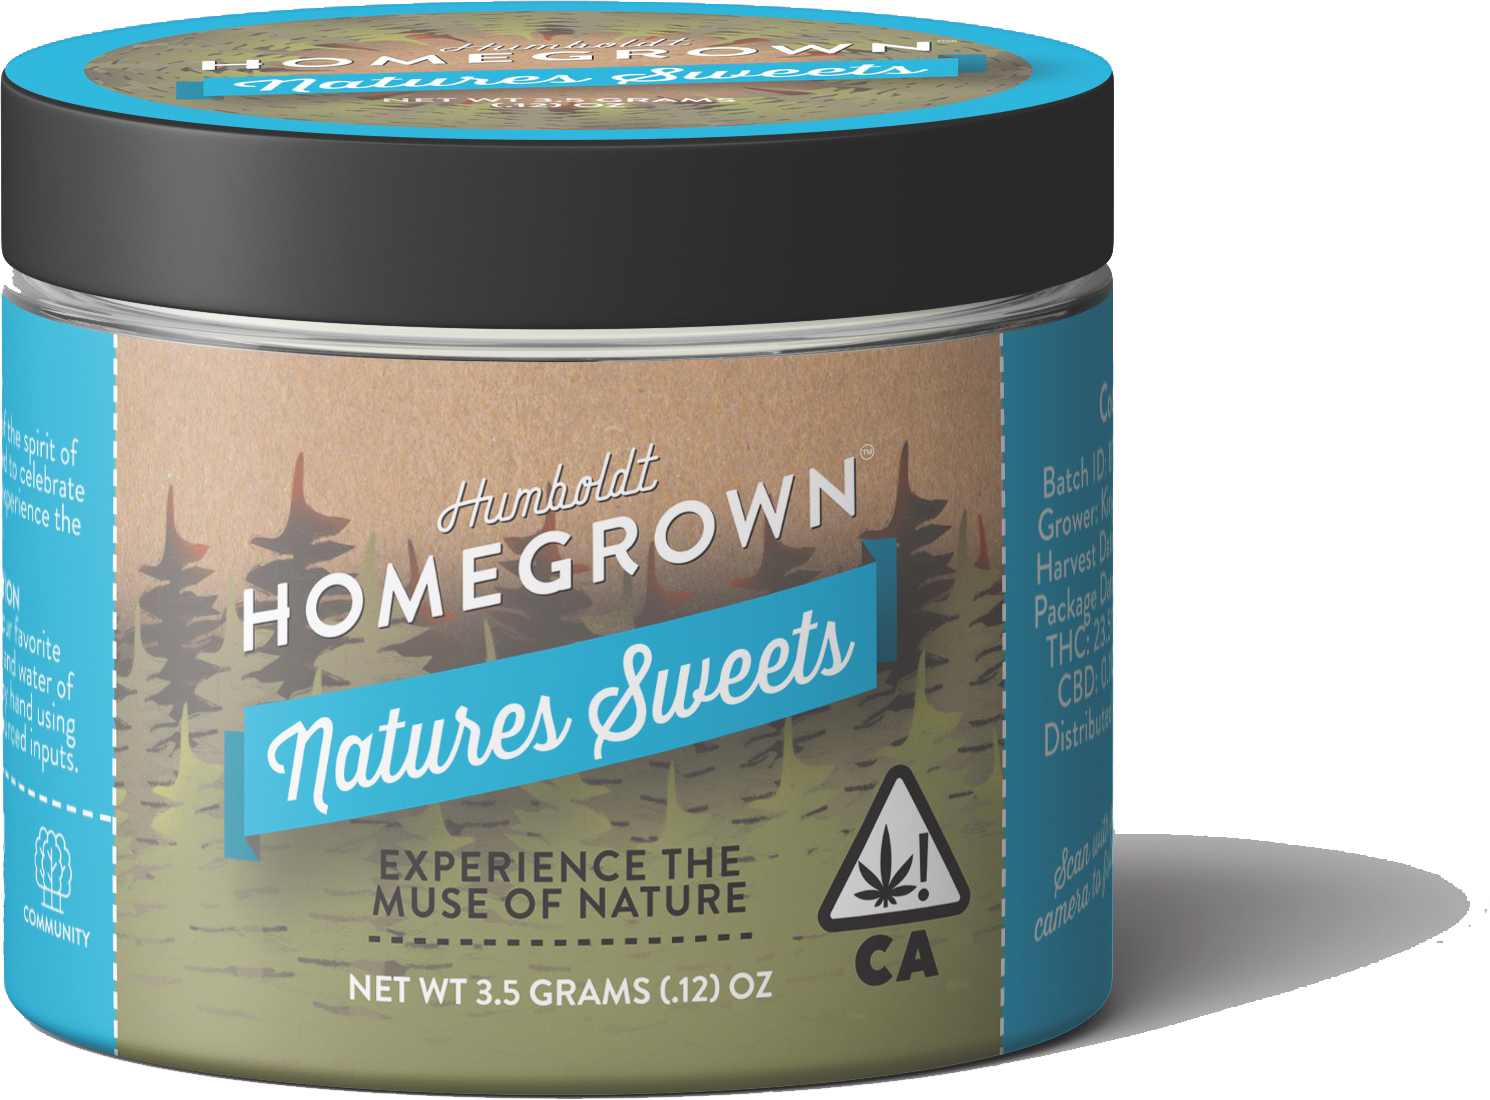 Humboldt Homegrown Natures Sweets Organically Sourced Cannabis